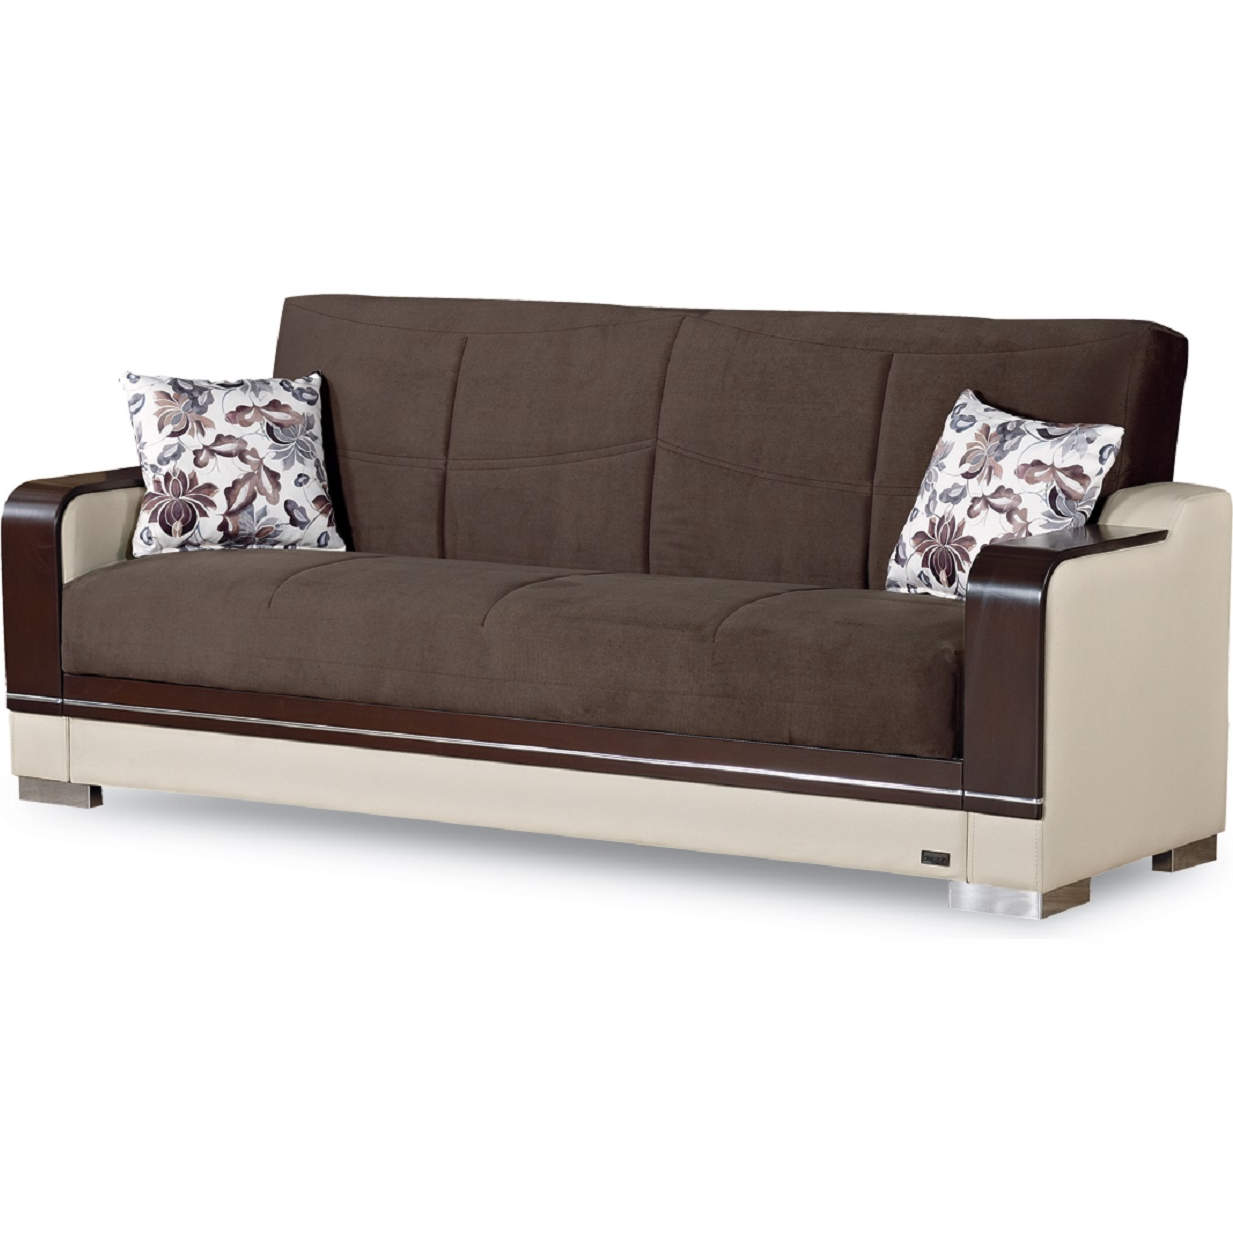 Texas Sleeper Sofa in Brown Chenille & Beige Leatherette by Empire Furniture